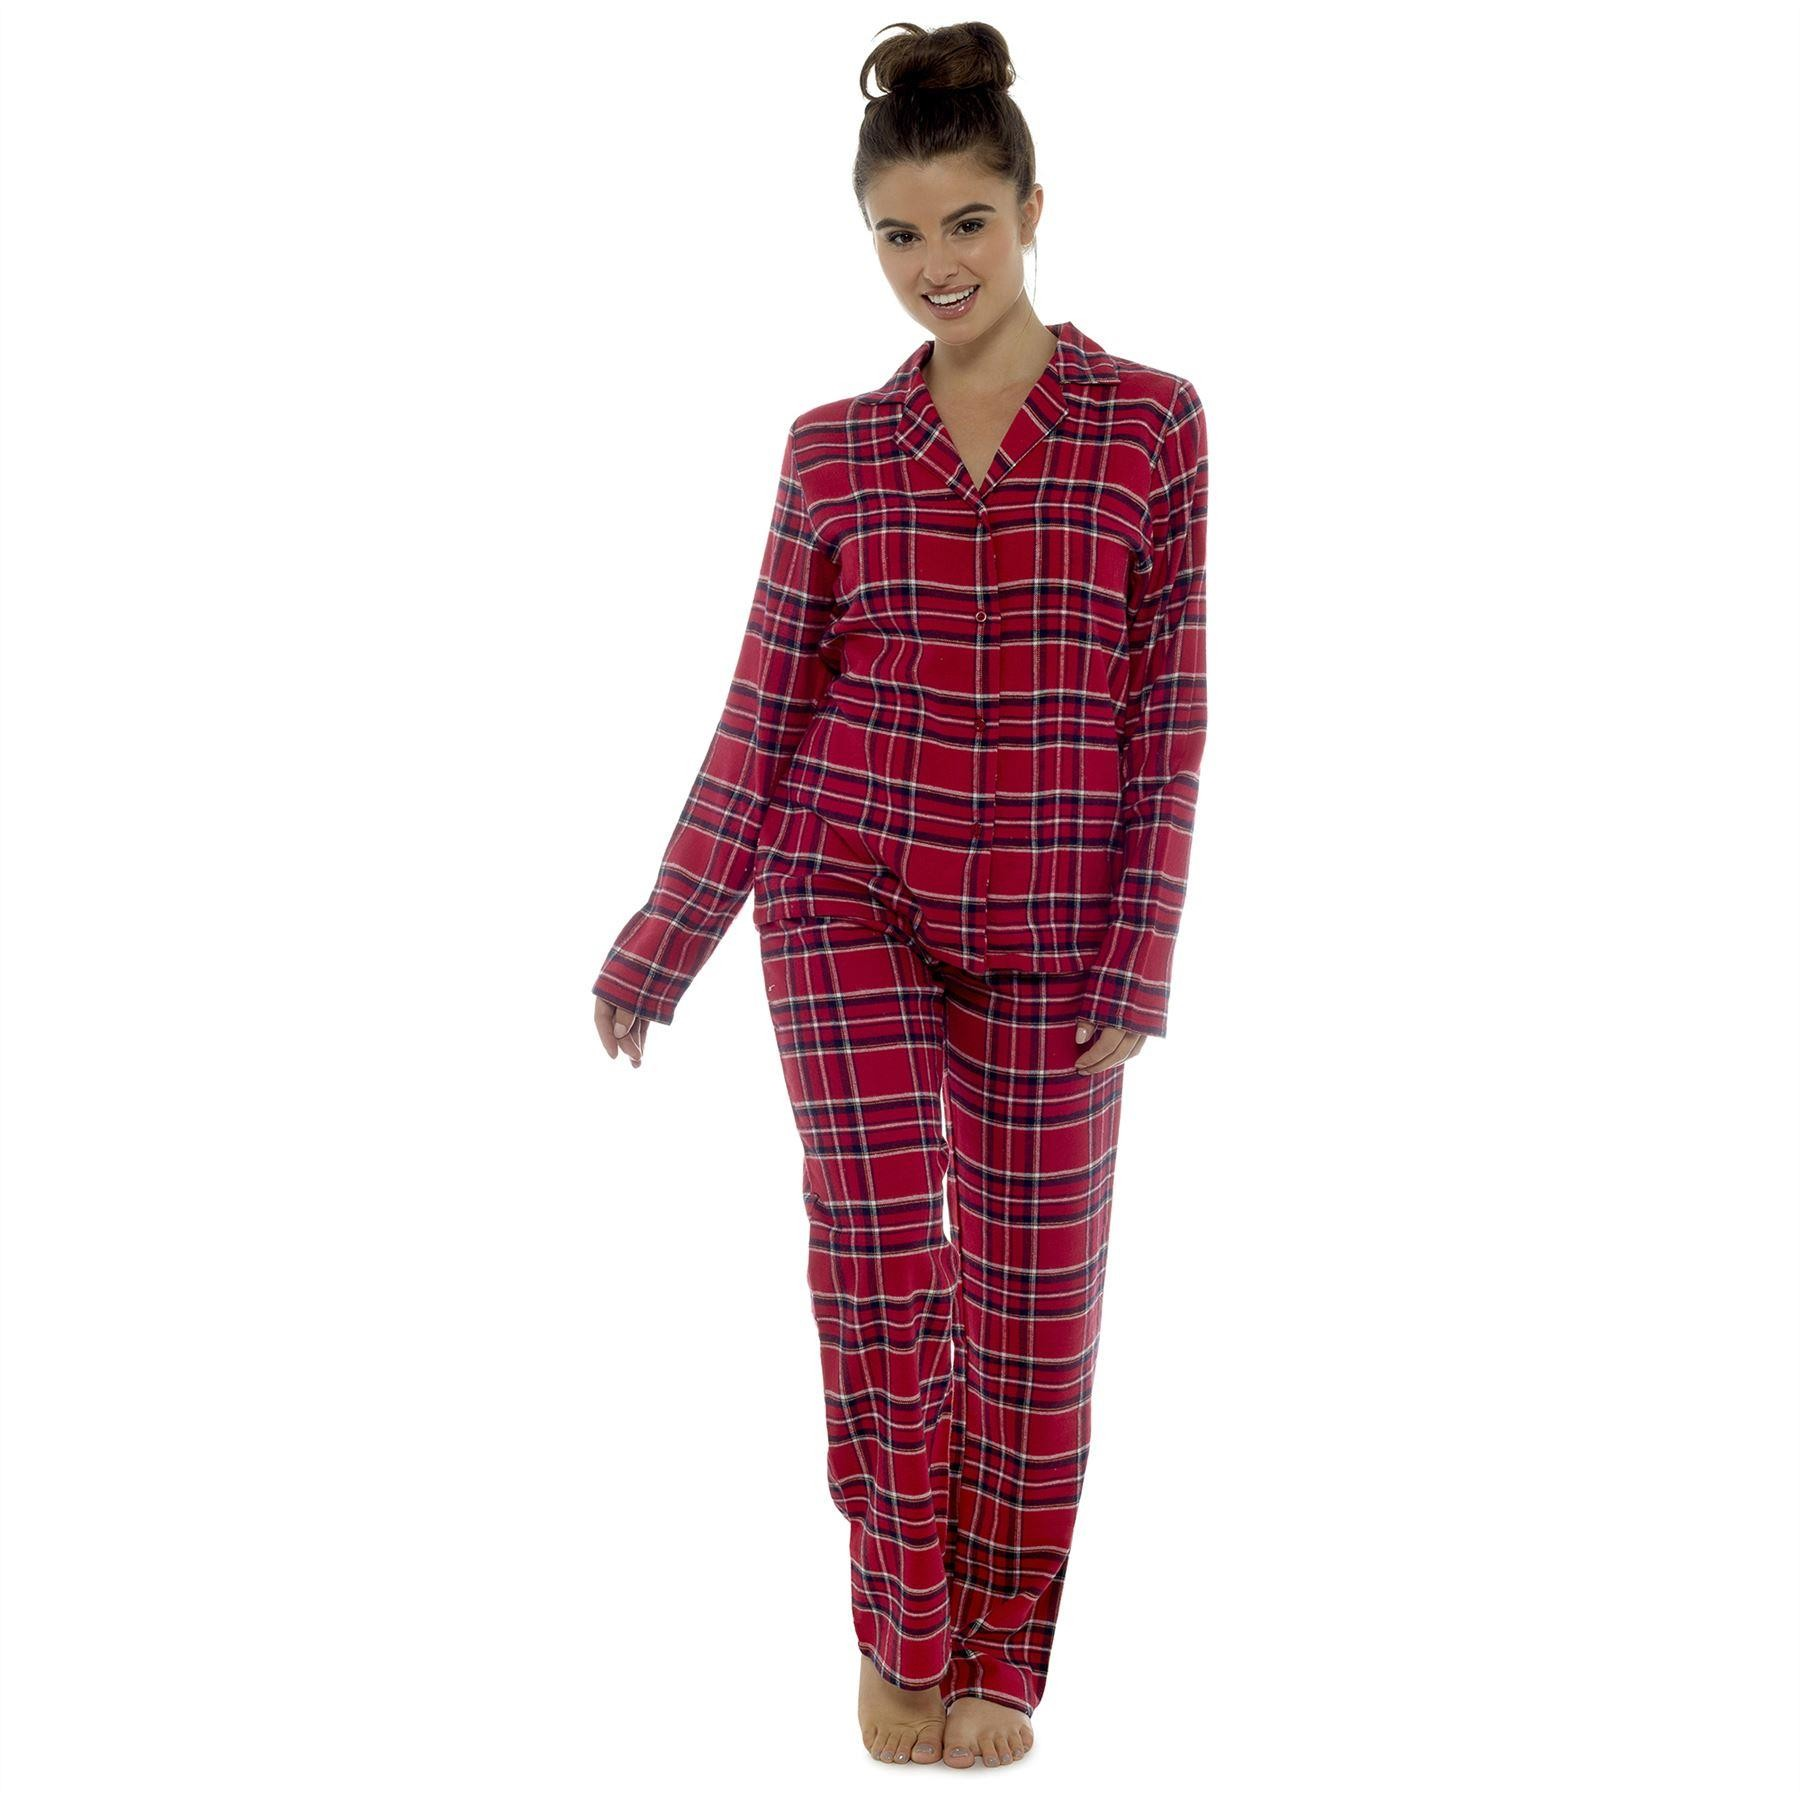 274fb3444 Ladies Brushed Cotton Check Pyjamas - Red/Navy | Free UK Delivery ...